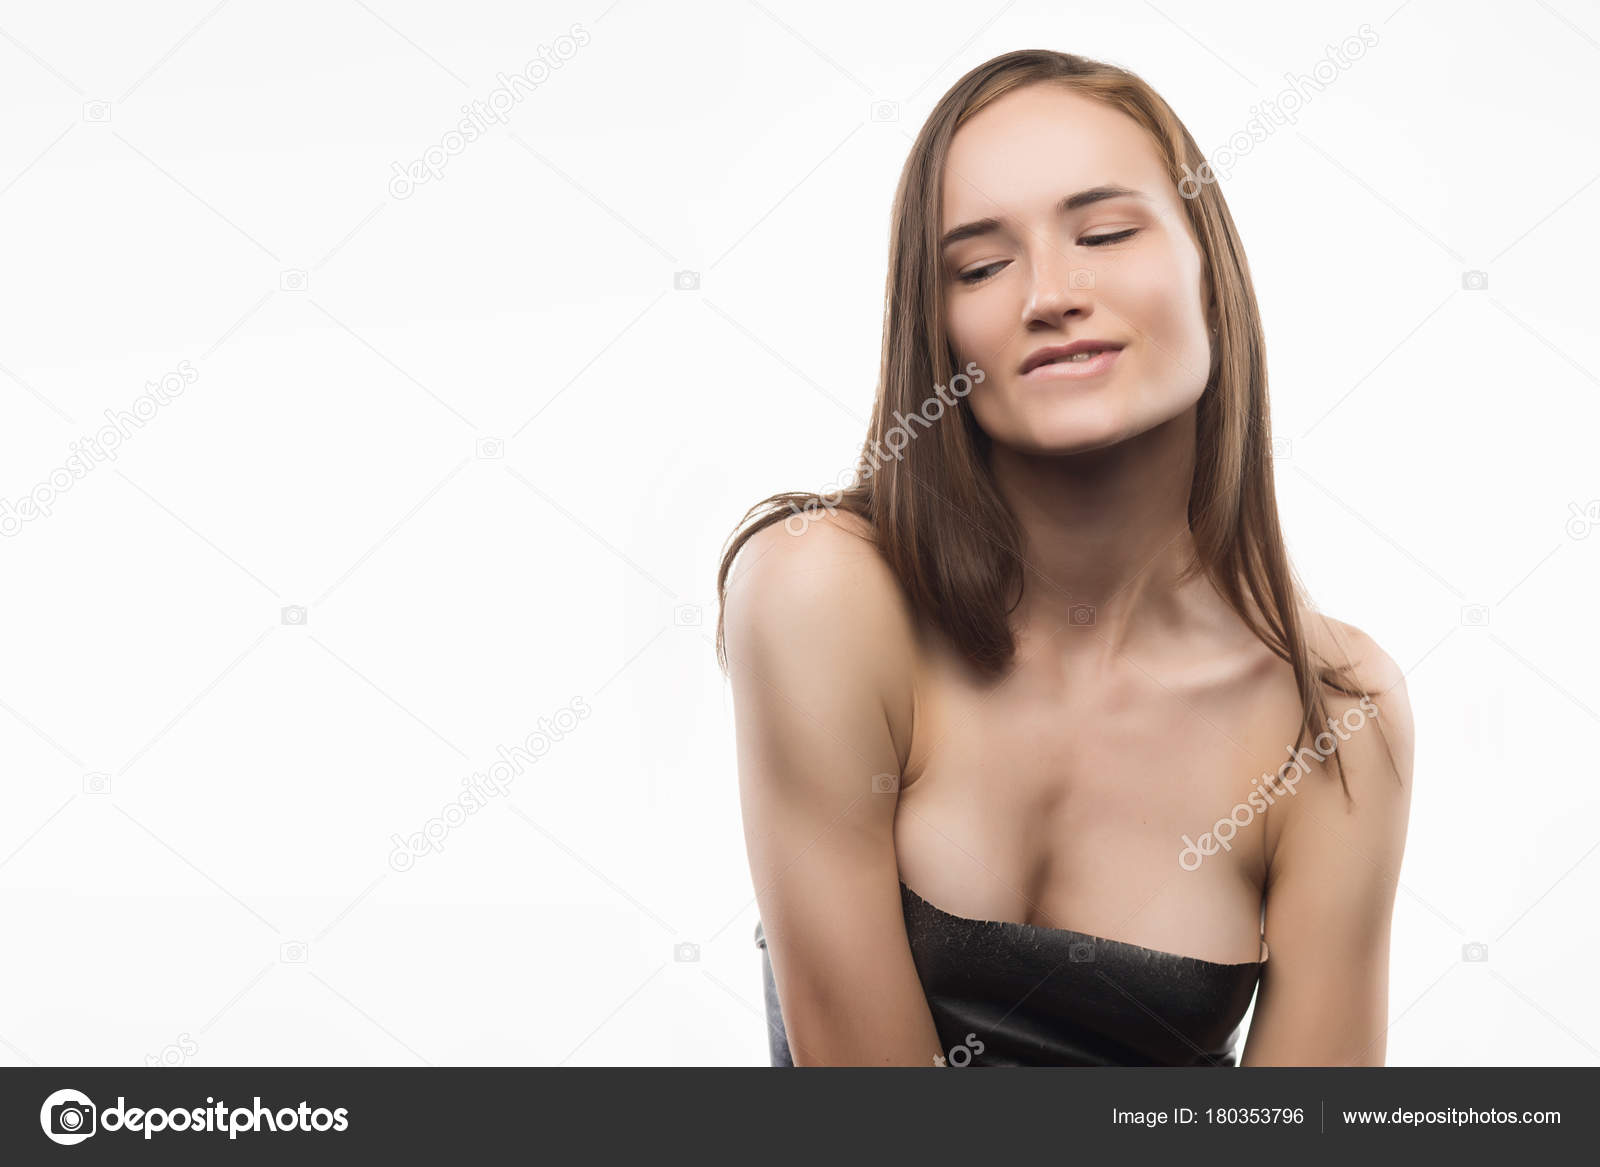 nude girls with glasses biting lower lip